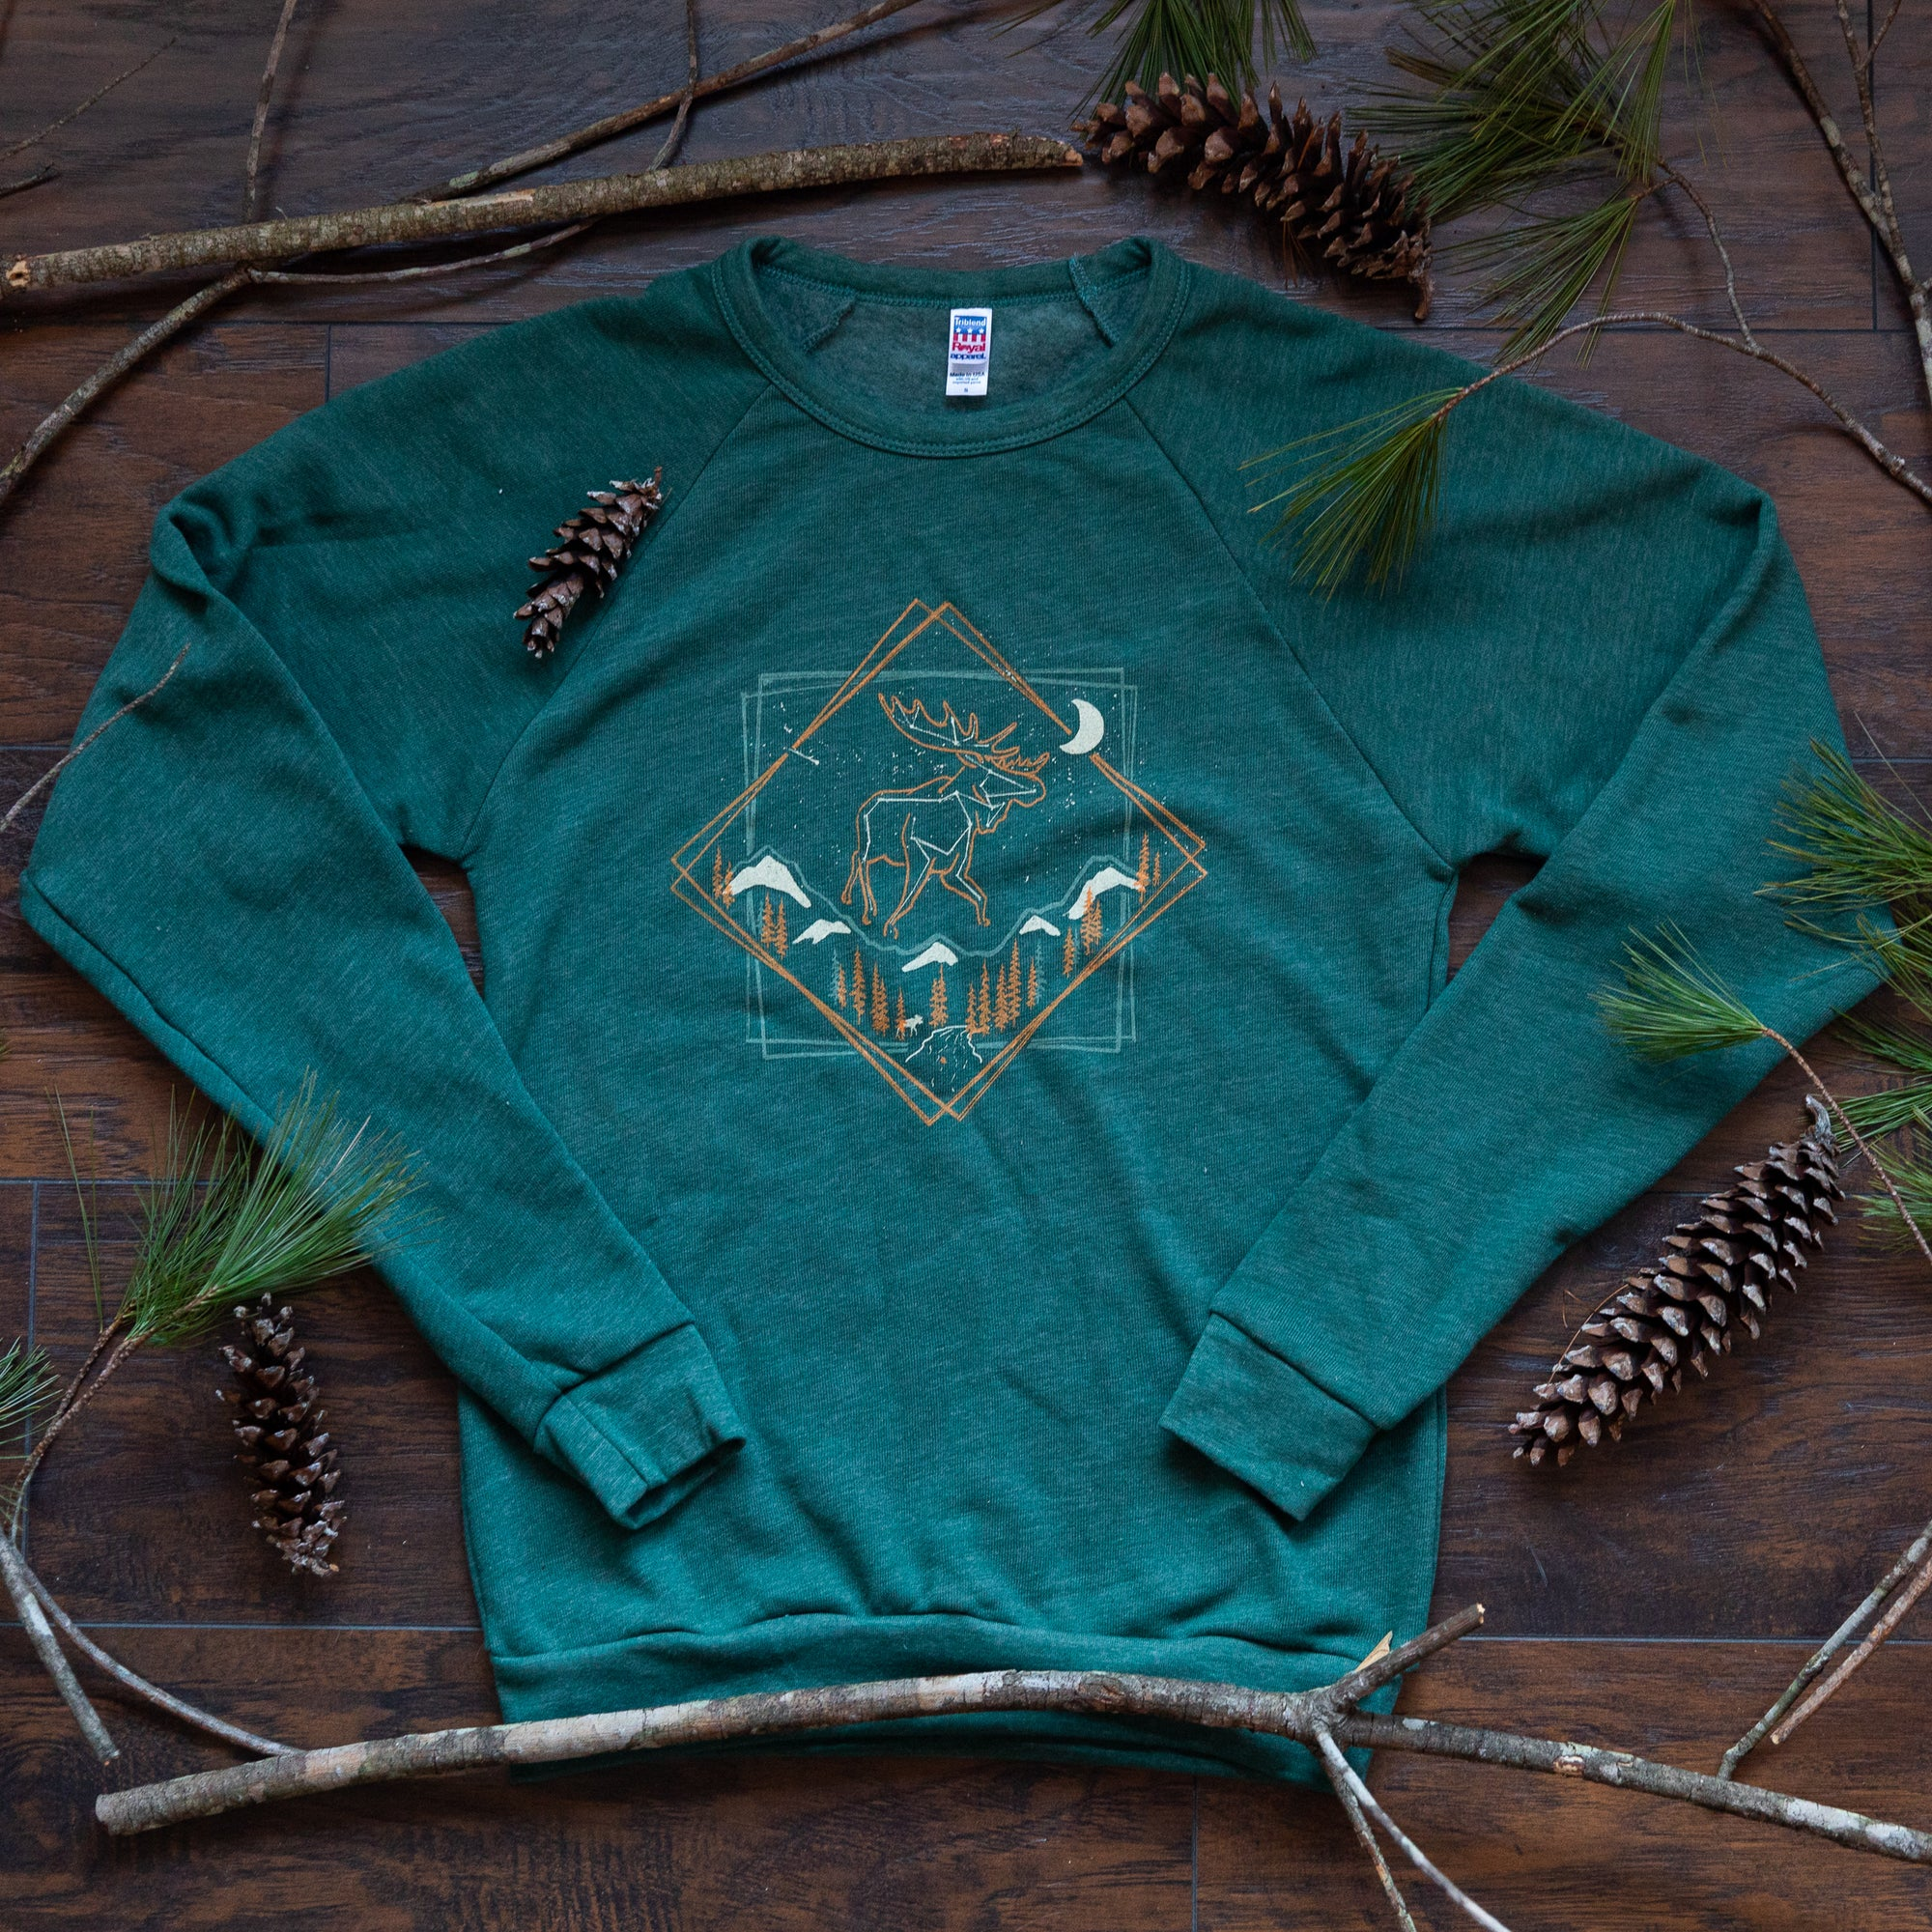 Menottees Heaven's Wild Moose Sweatshirt